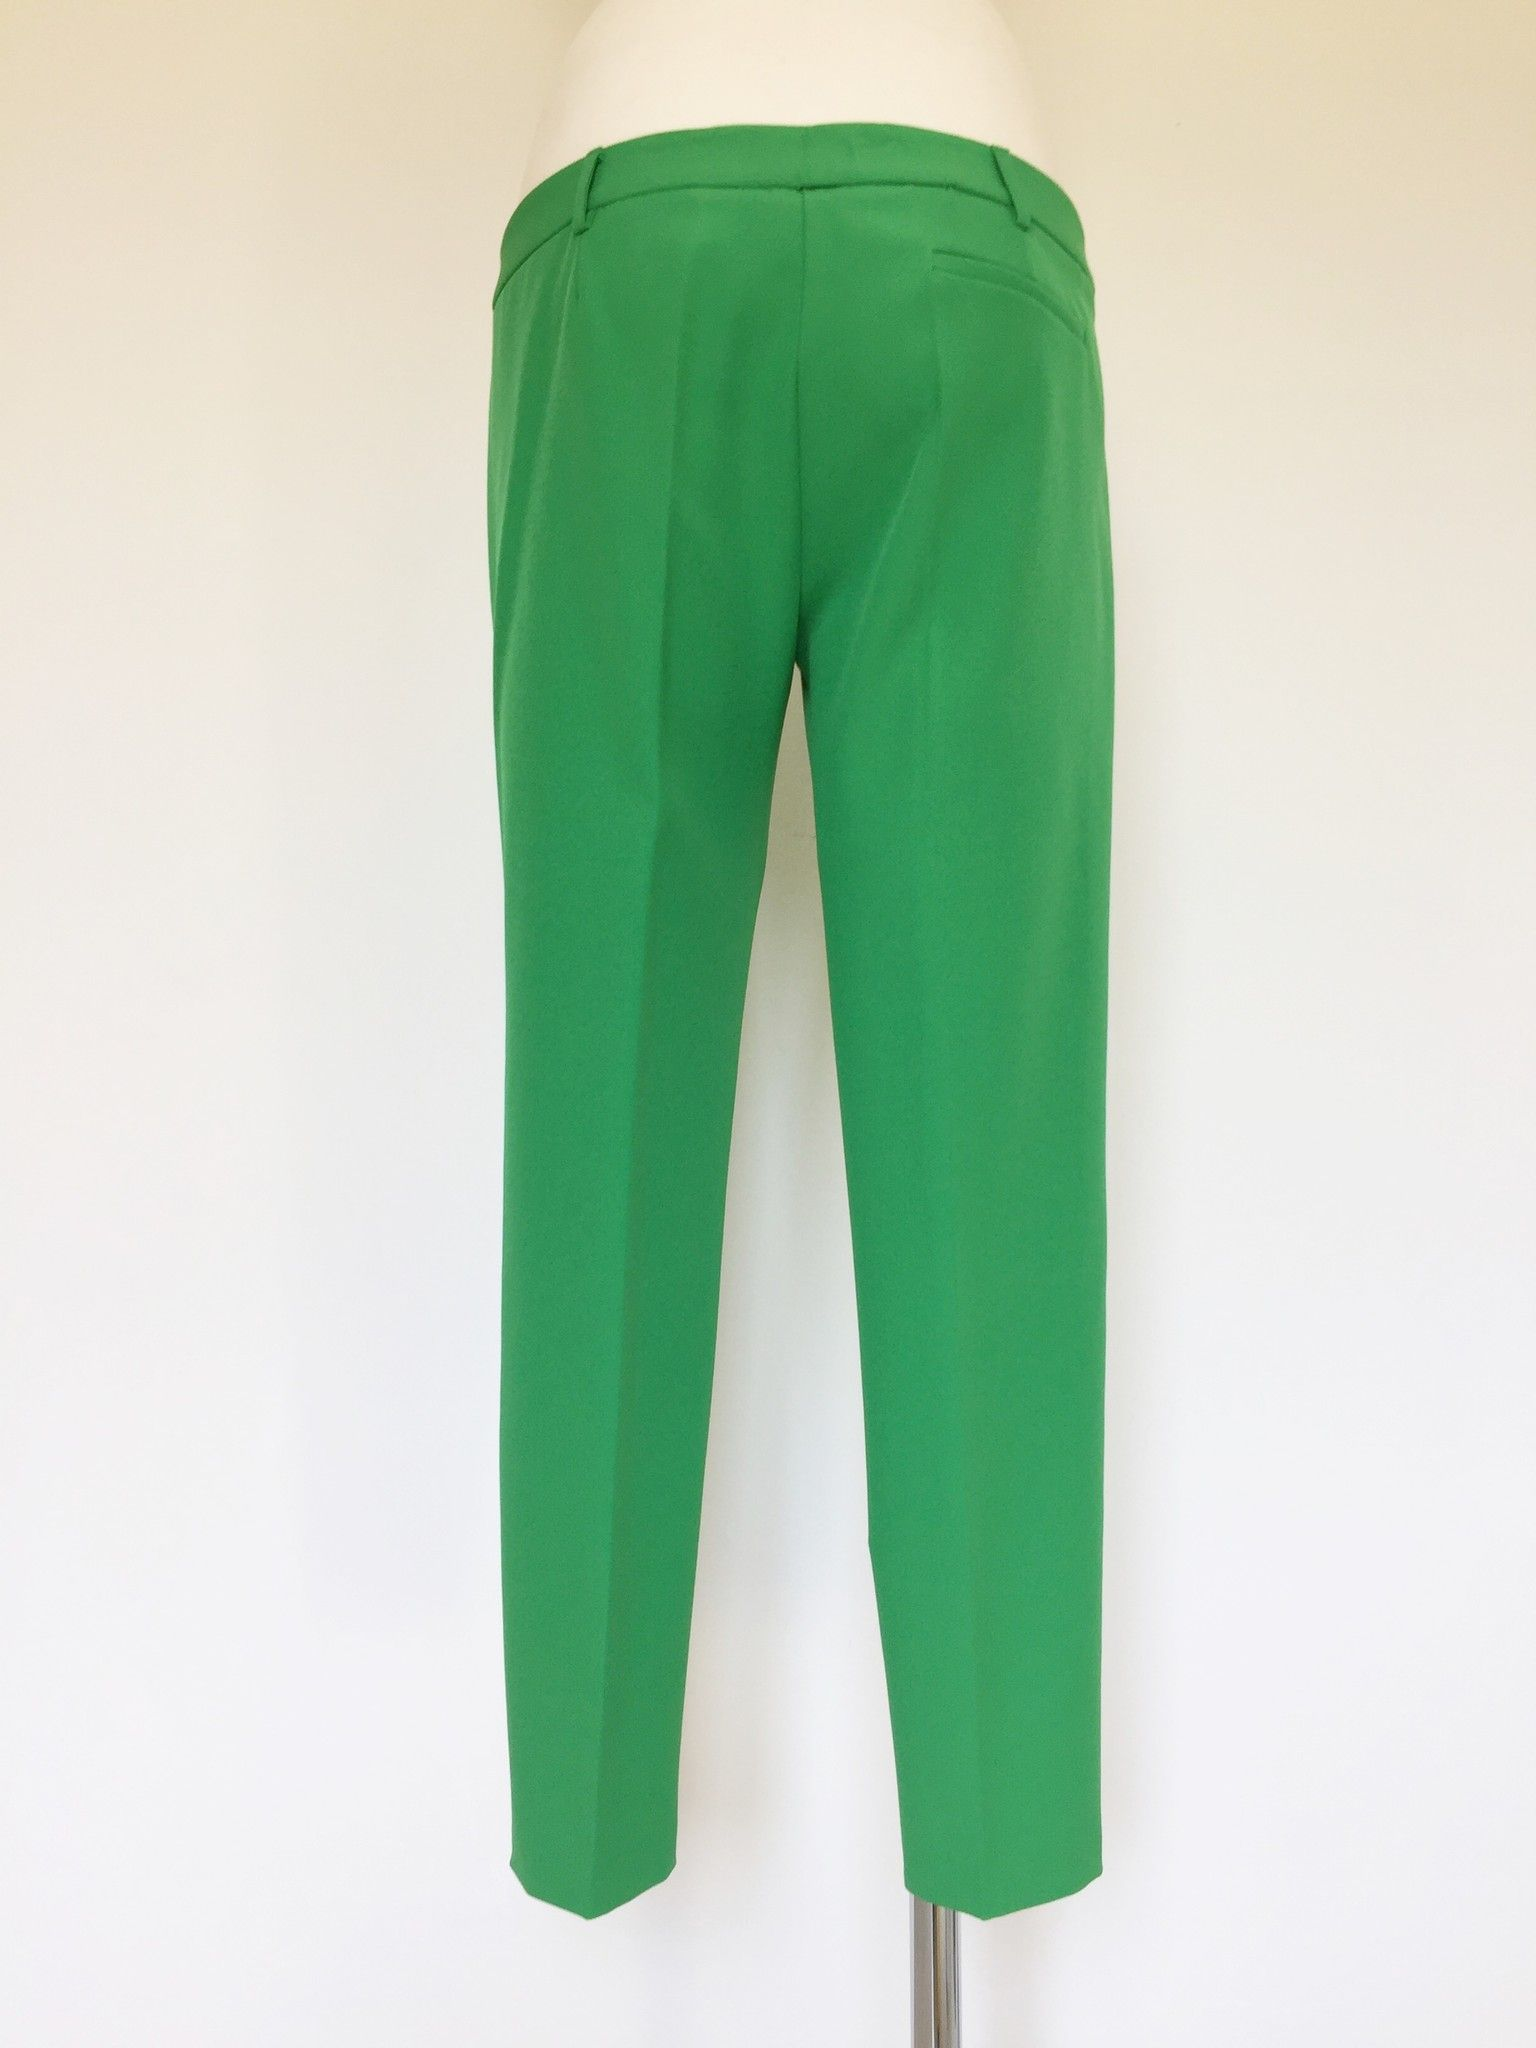 Space Capri Model Trousers Cod.AI134002